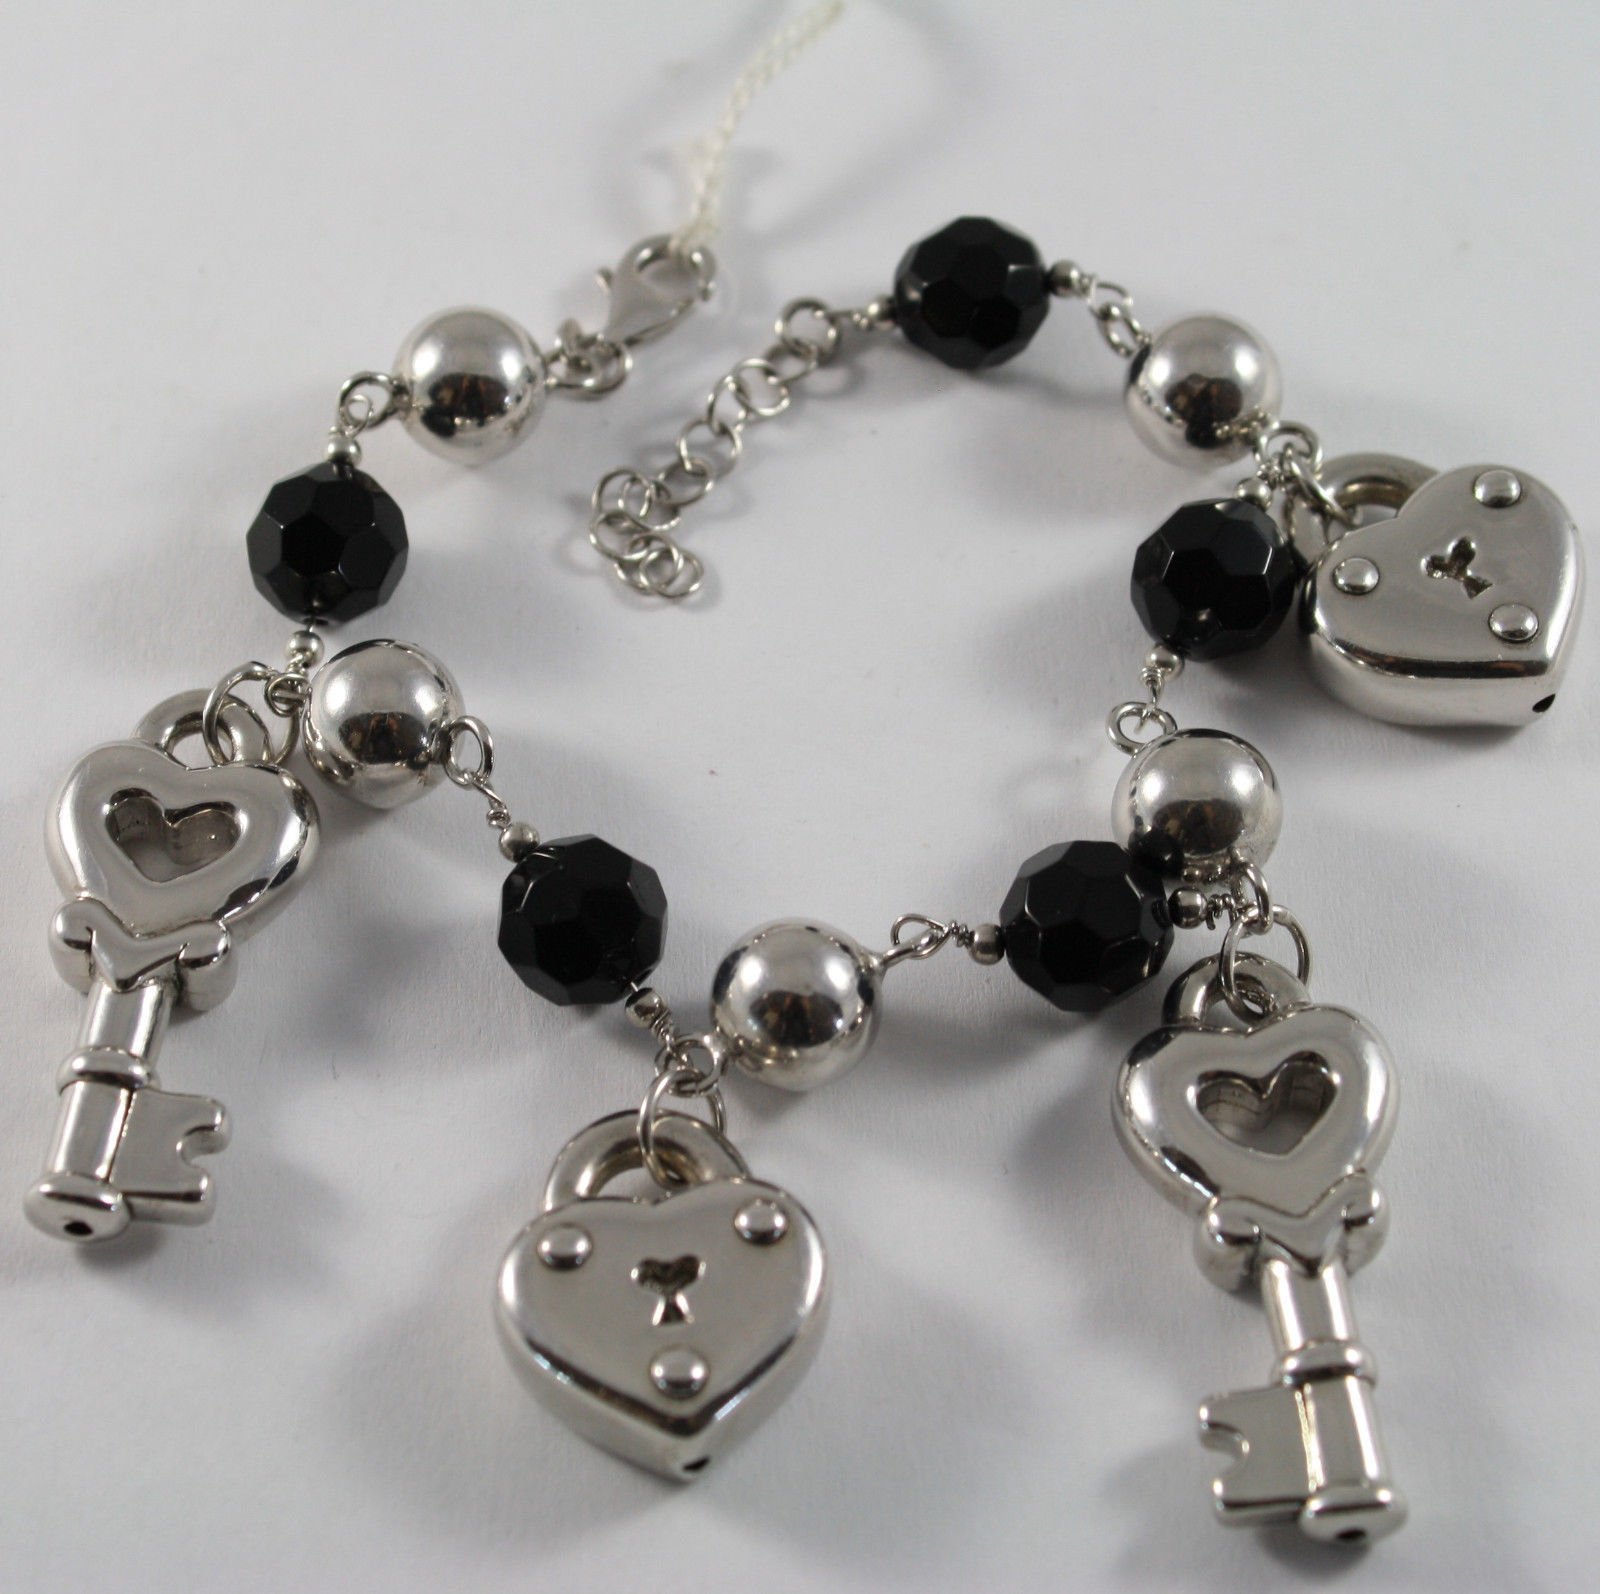 .925 RHODIUM SILVER BRACELET WITH BLACK ONYX AND CHARM HEART AND KEY